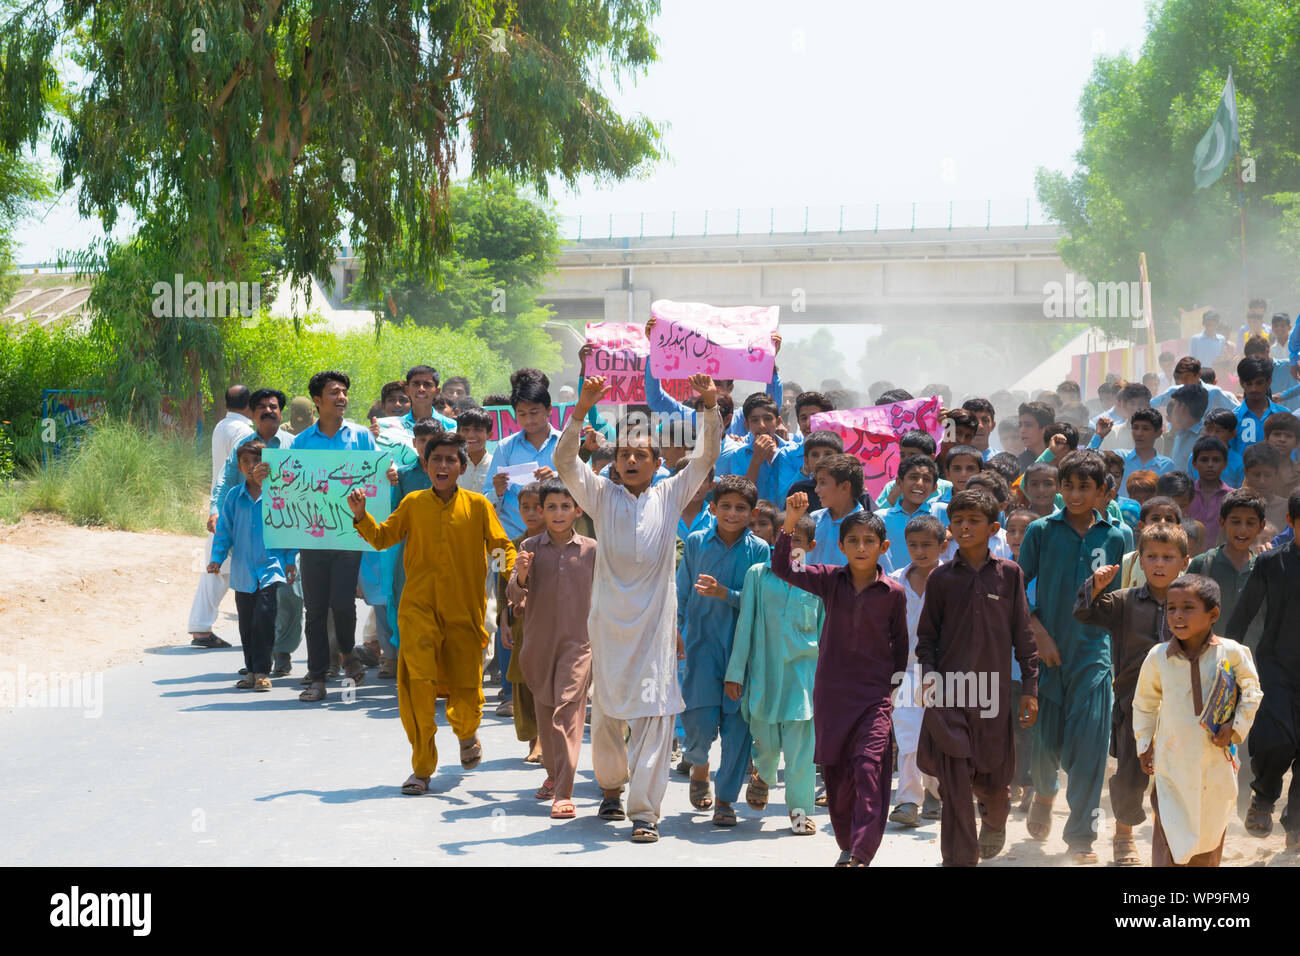 Rahim yar khan,Punjab,Pakistan-August 30,2019:school boys of local school and a large number of people protesting against indian army. Stock Photo